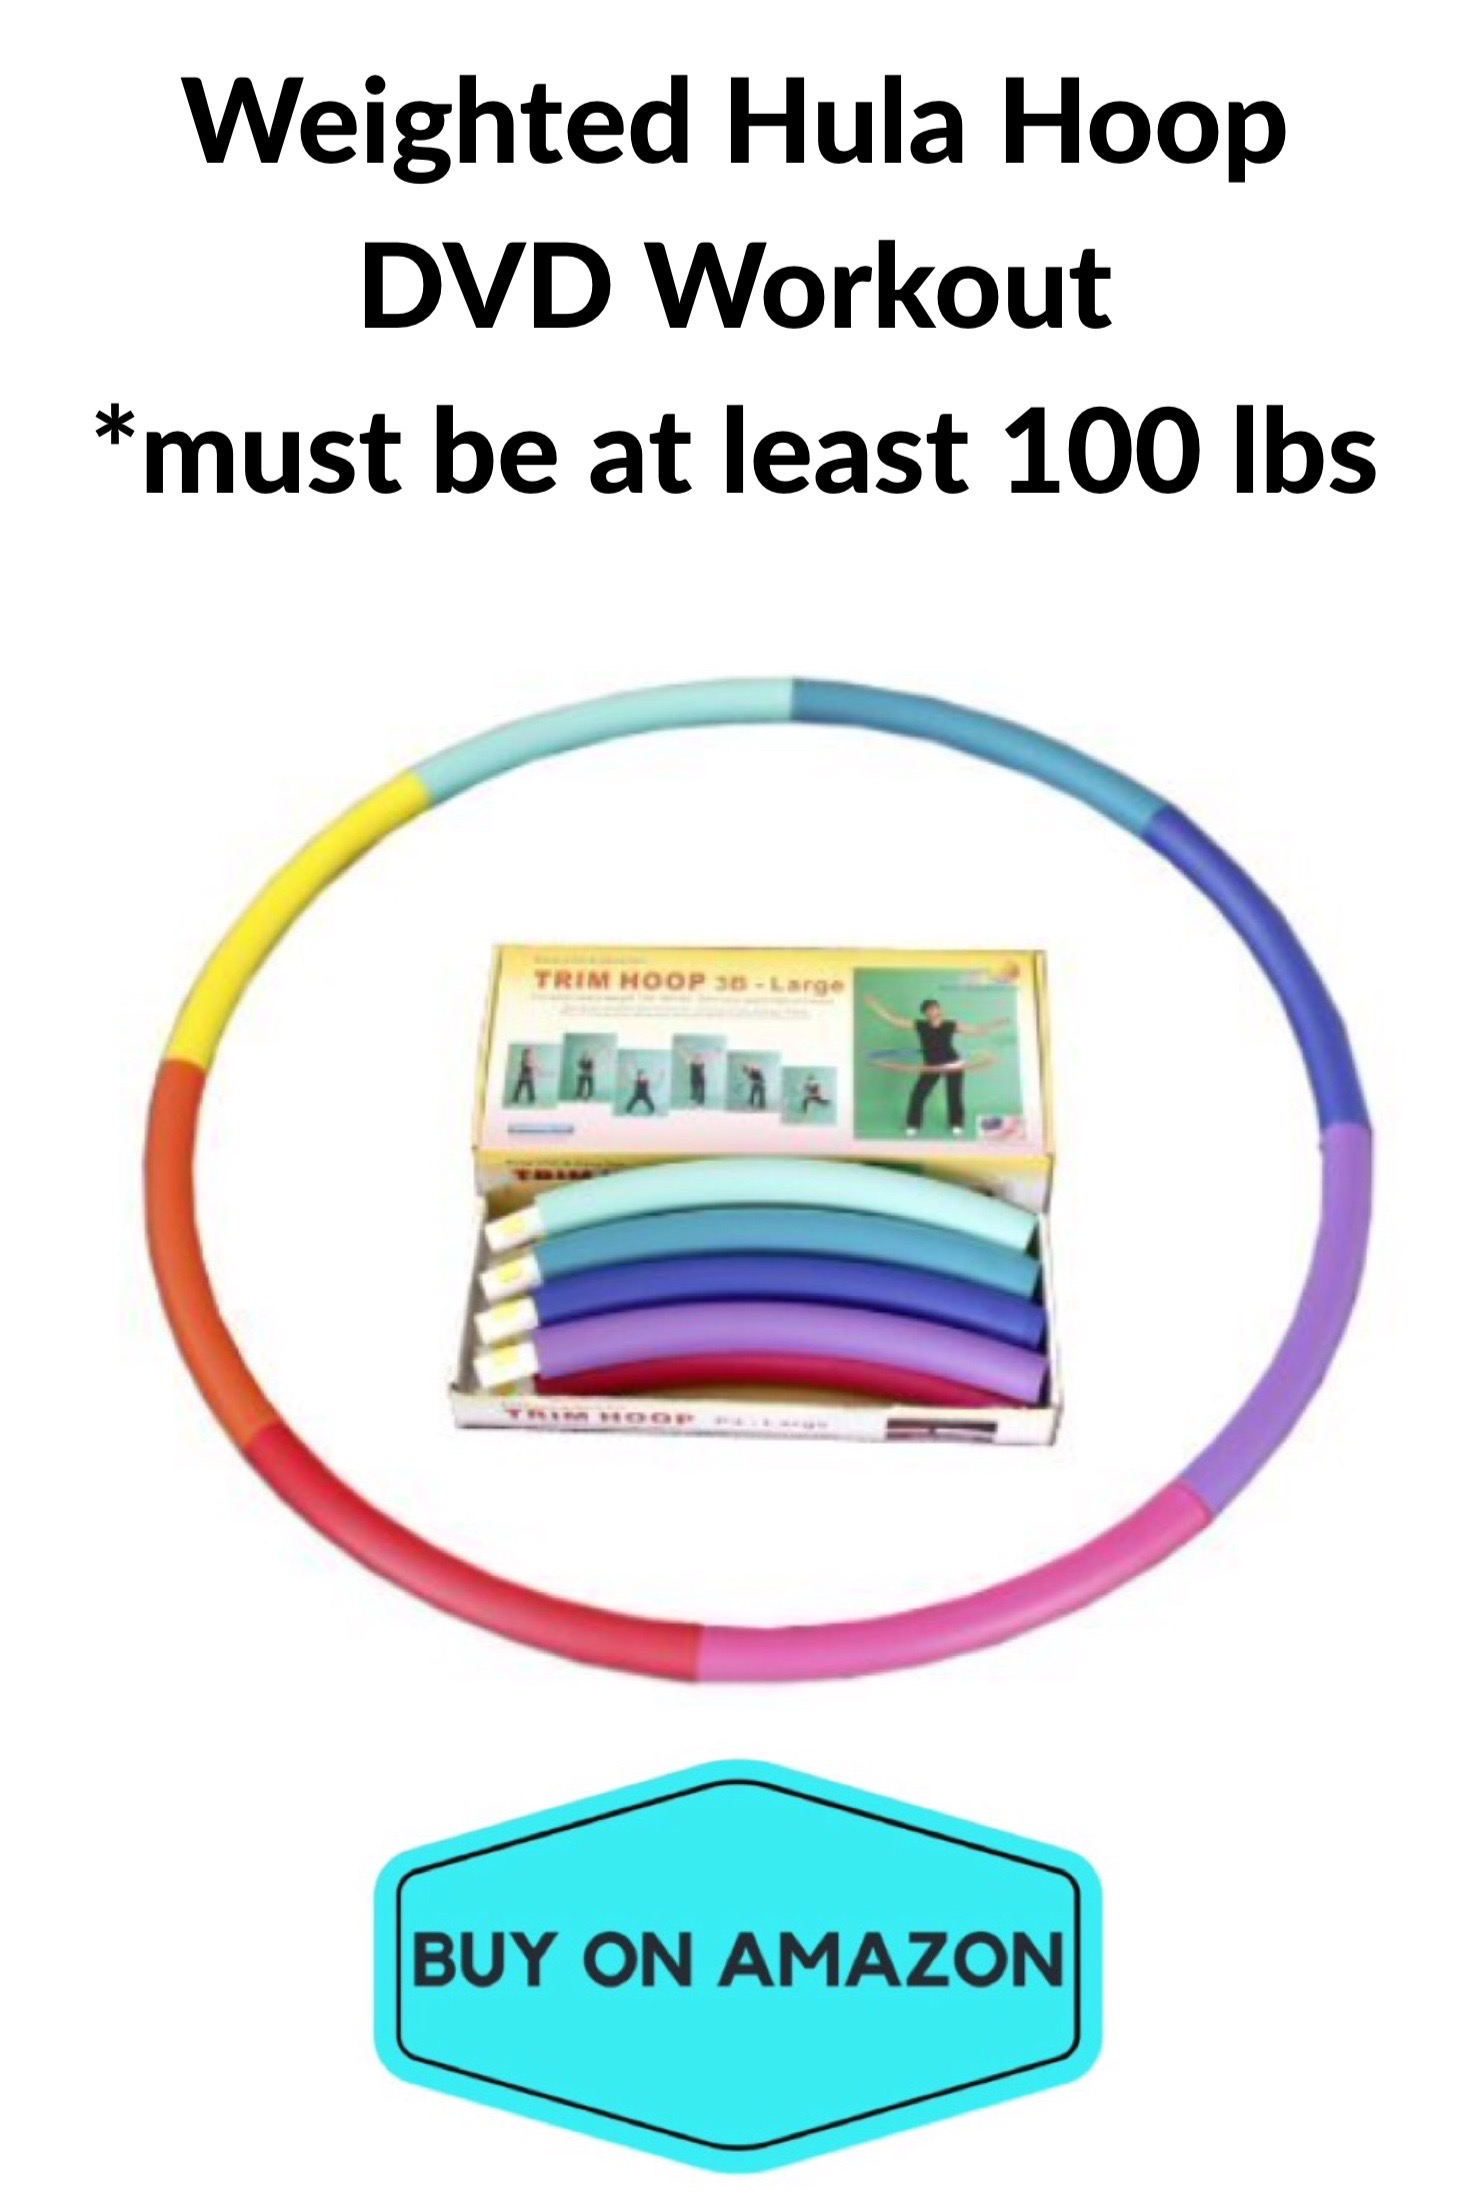 Weighted Hula Hoop DVD Workout